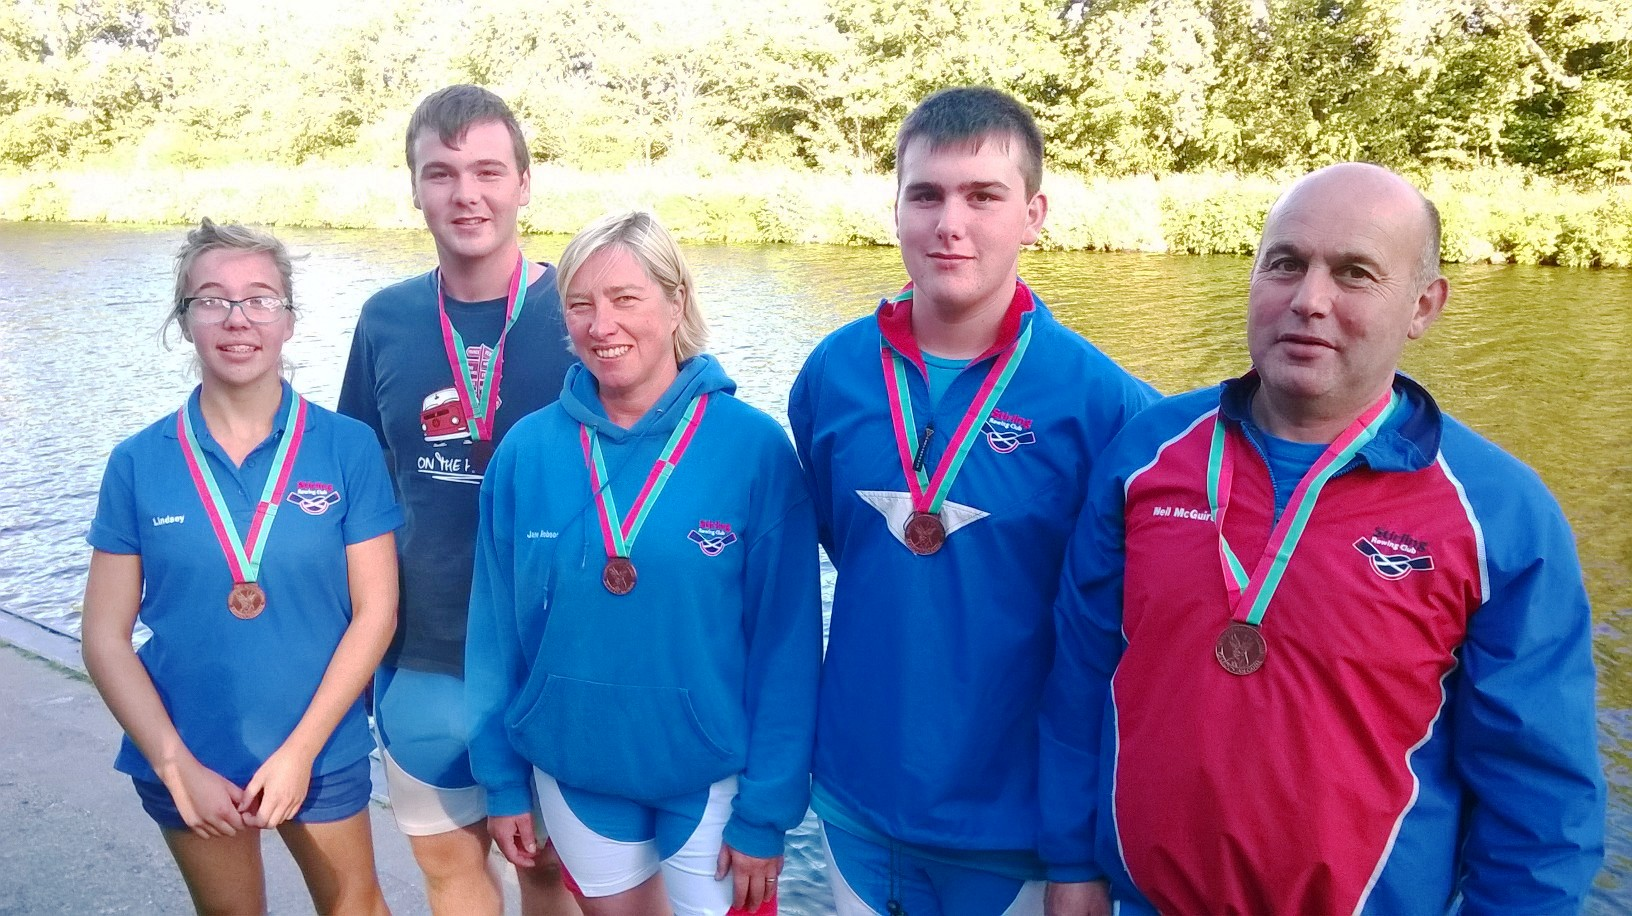 Stirling Gen4x winners - Inverness Sprint - Aug 2014